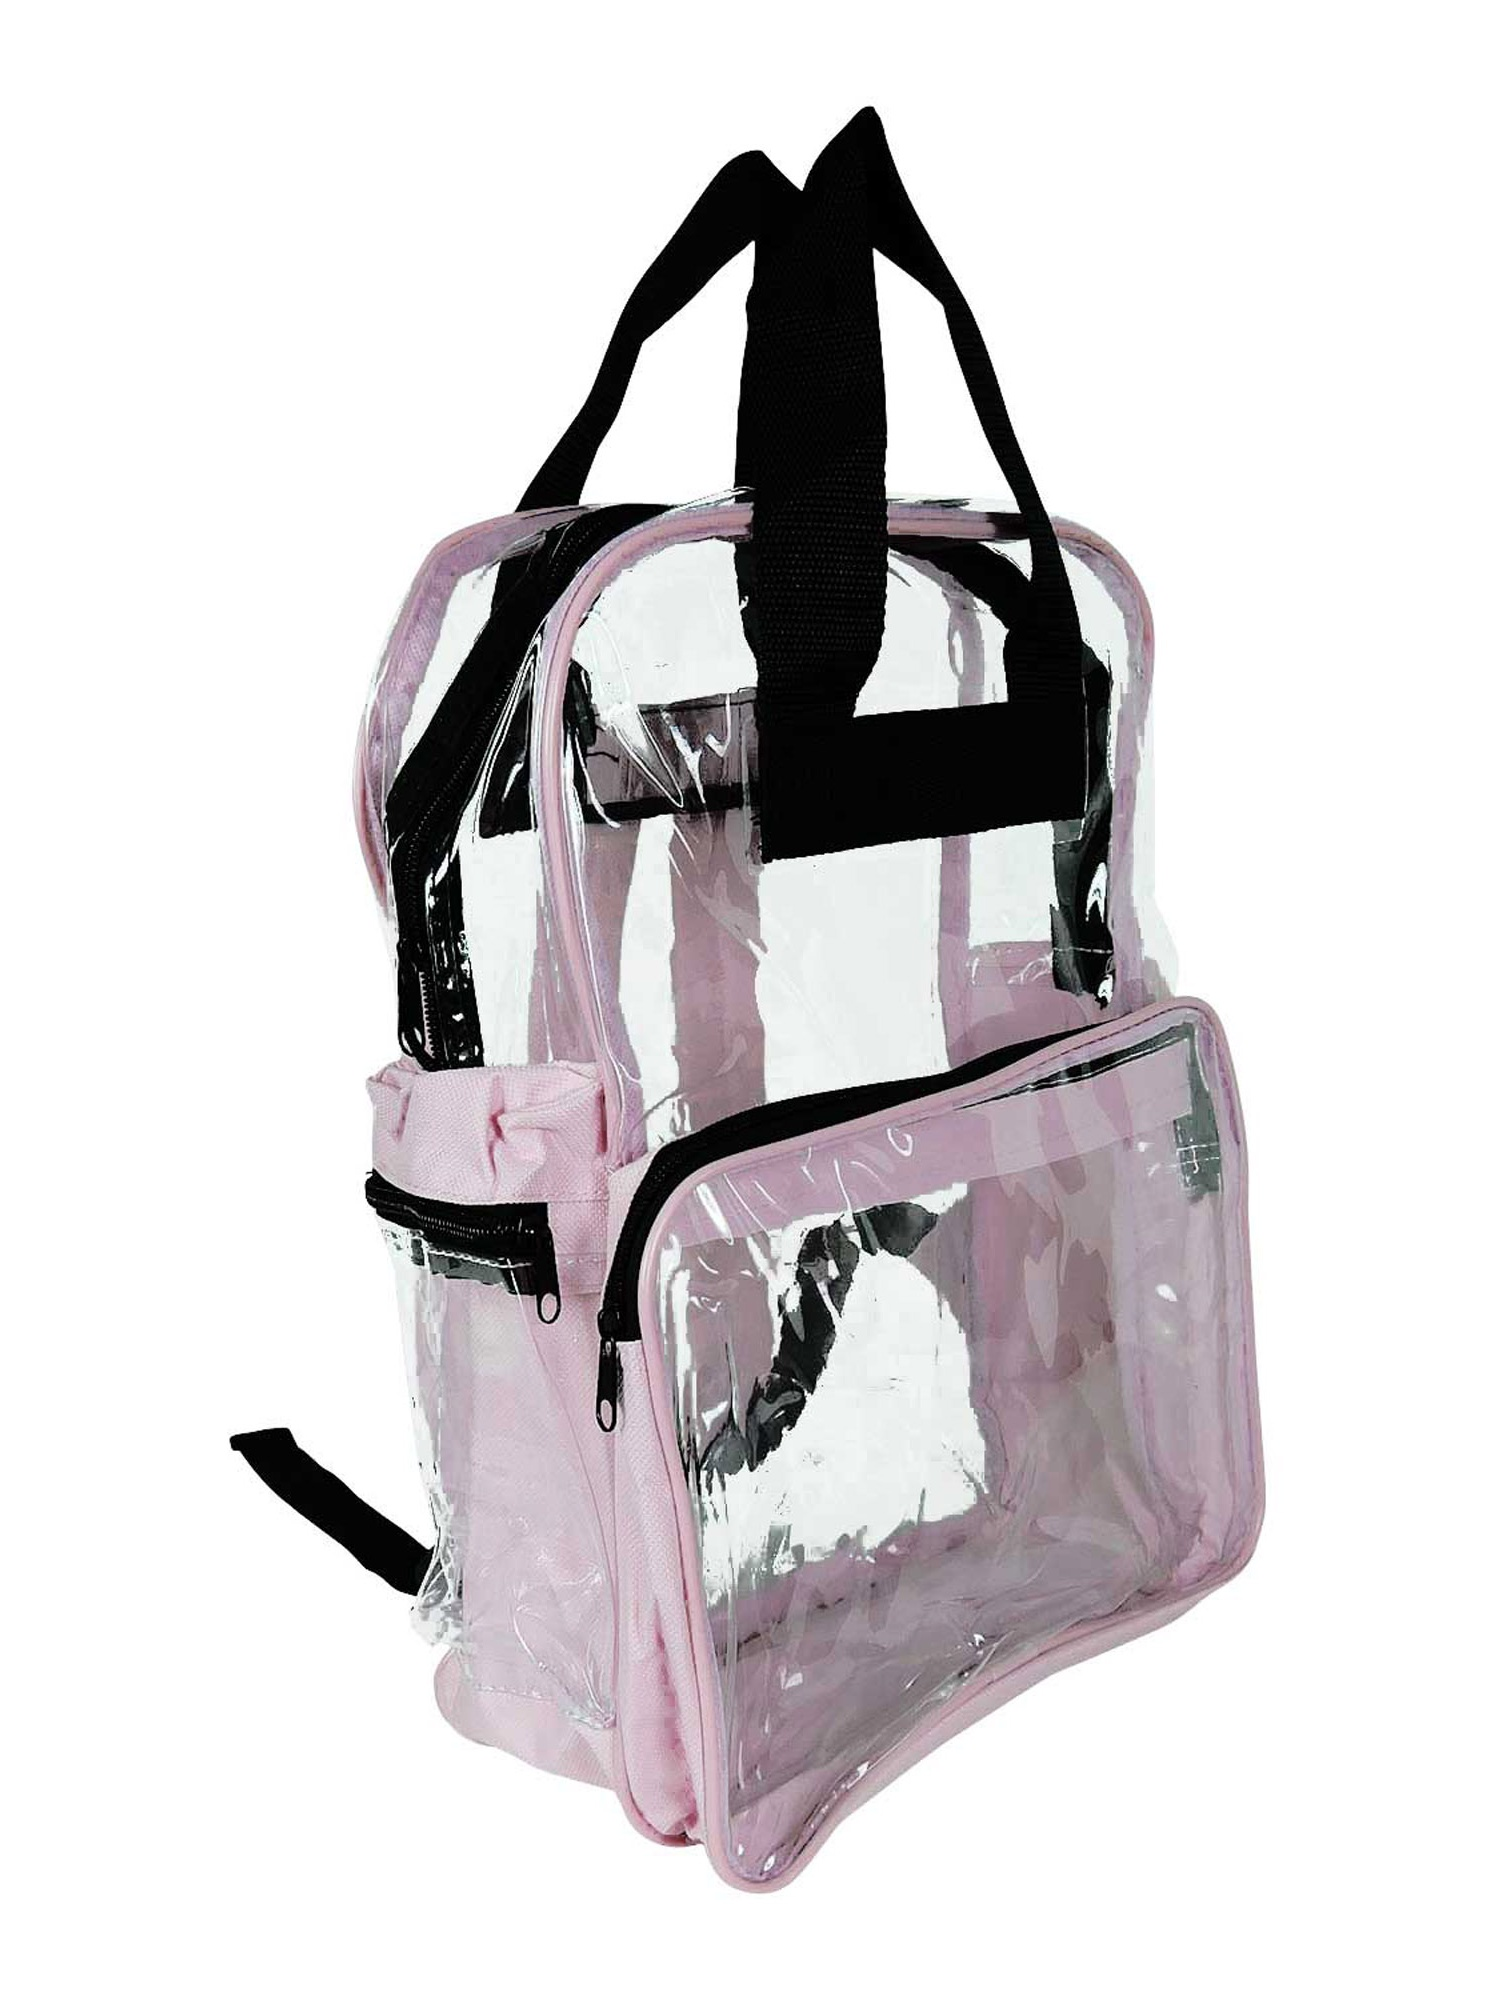 Small Clear Backpack Transparent PVC Security School Bag